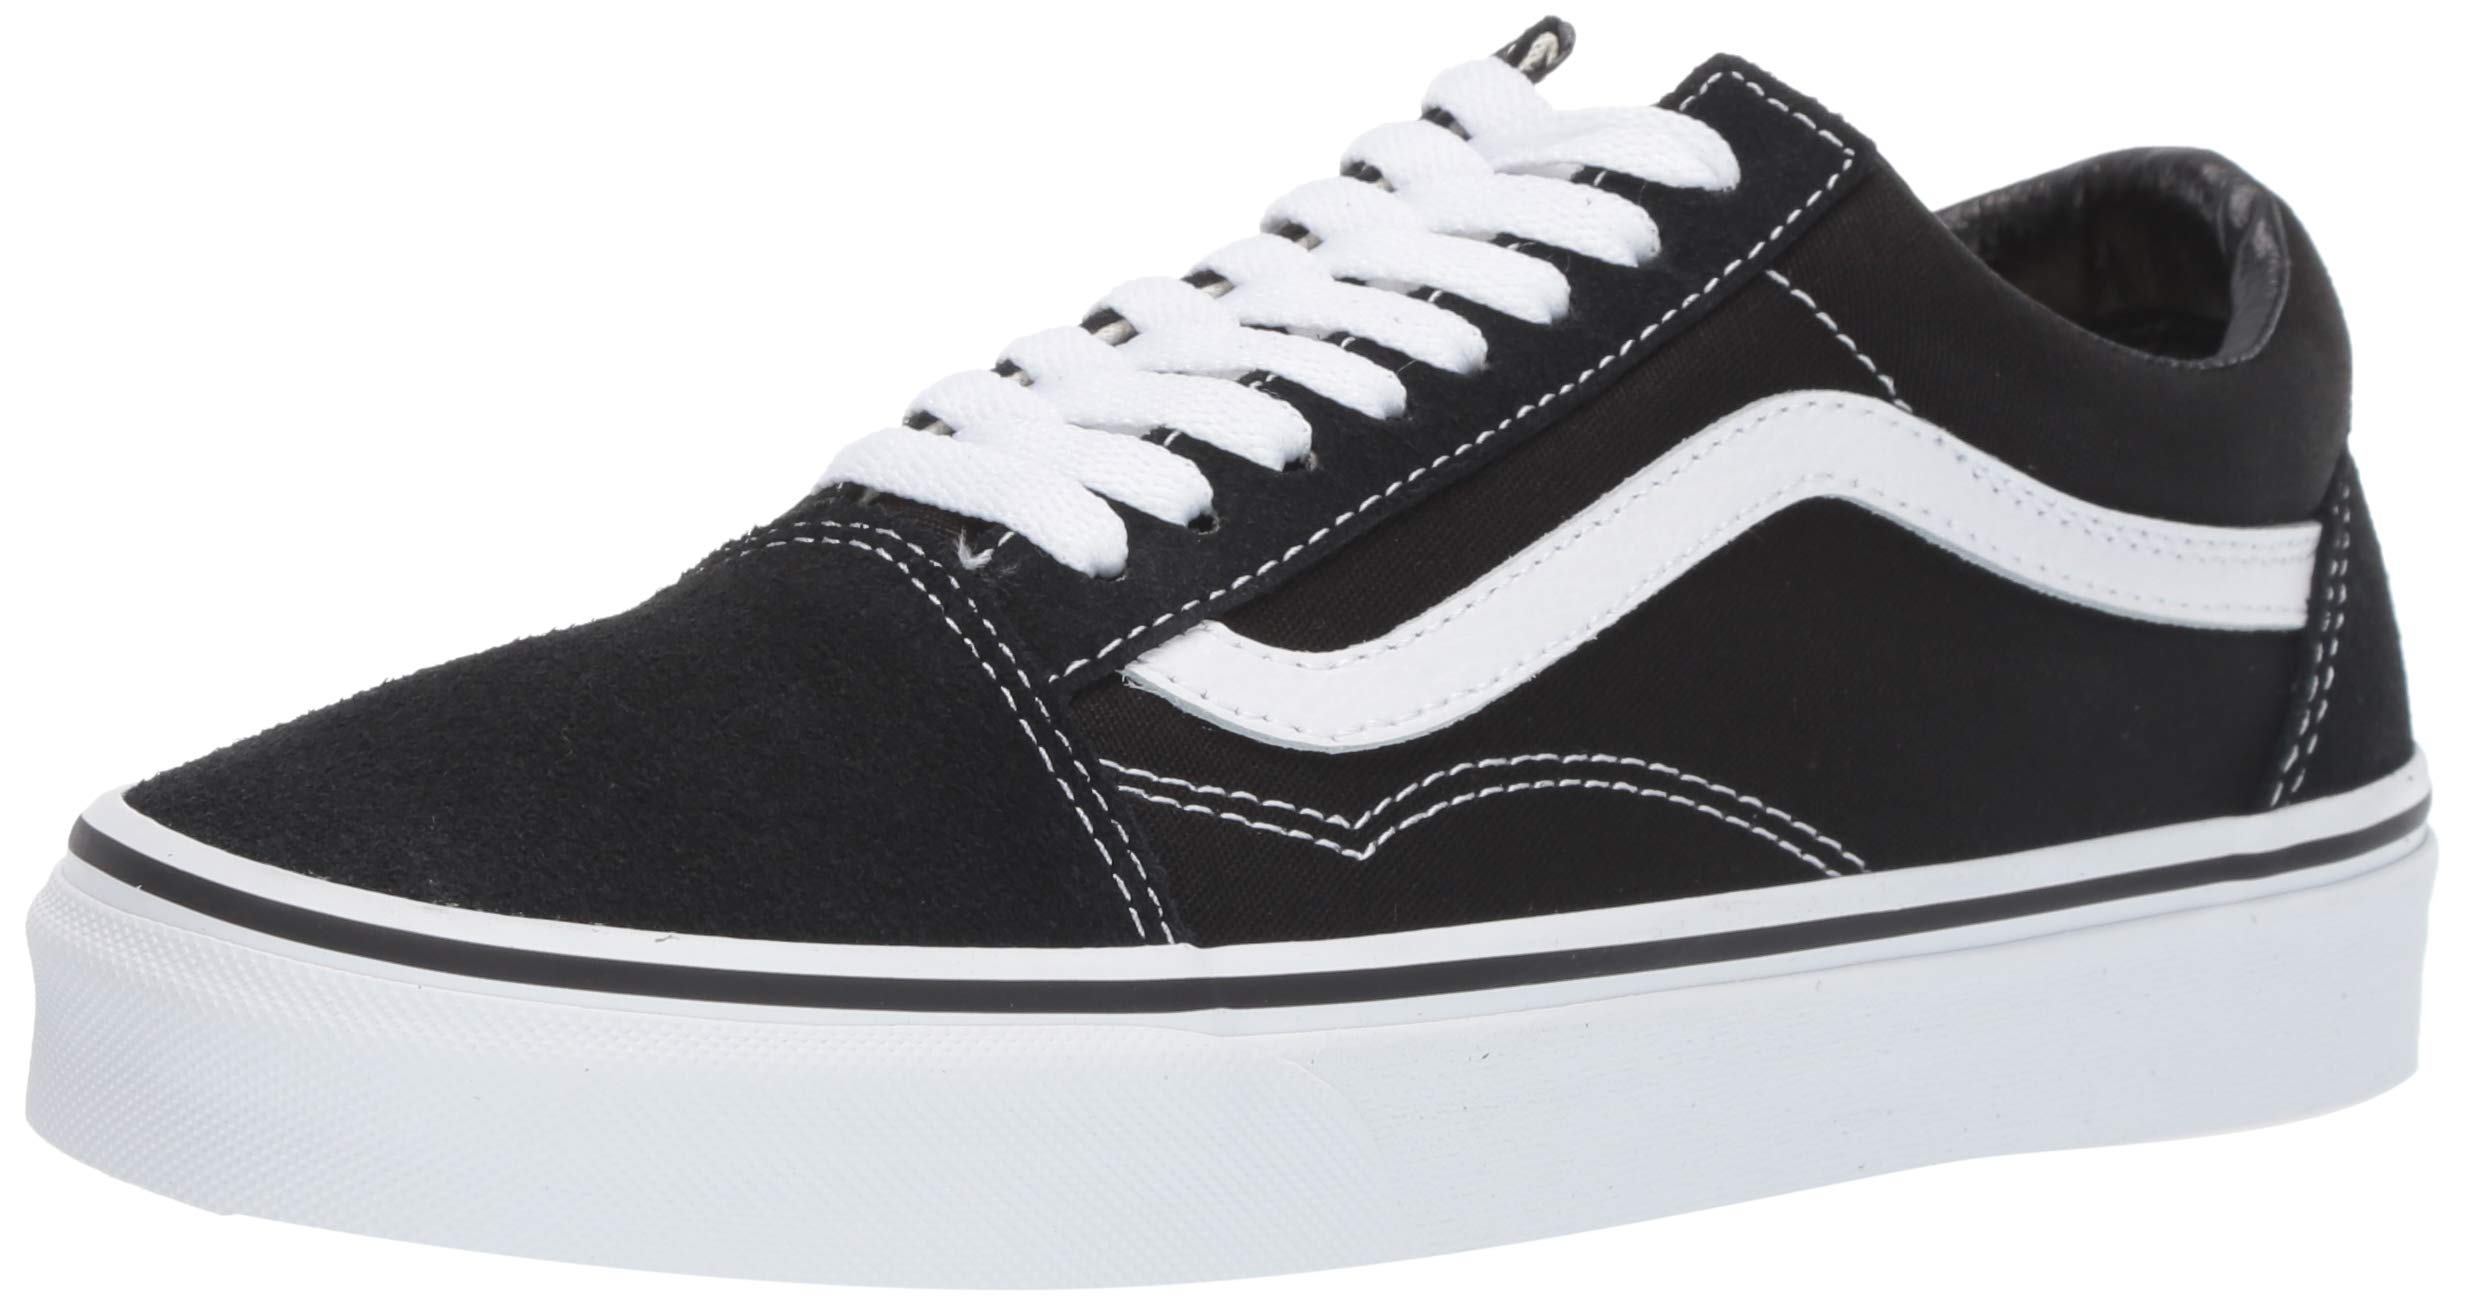 Vans Unisex Old Skool Black/White Skate Shoe 5.5 Men US / 7 Women US by Vans